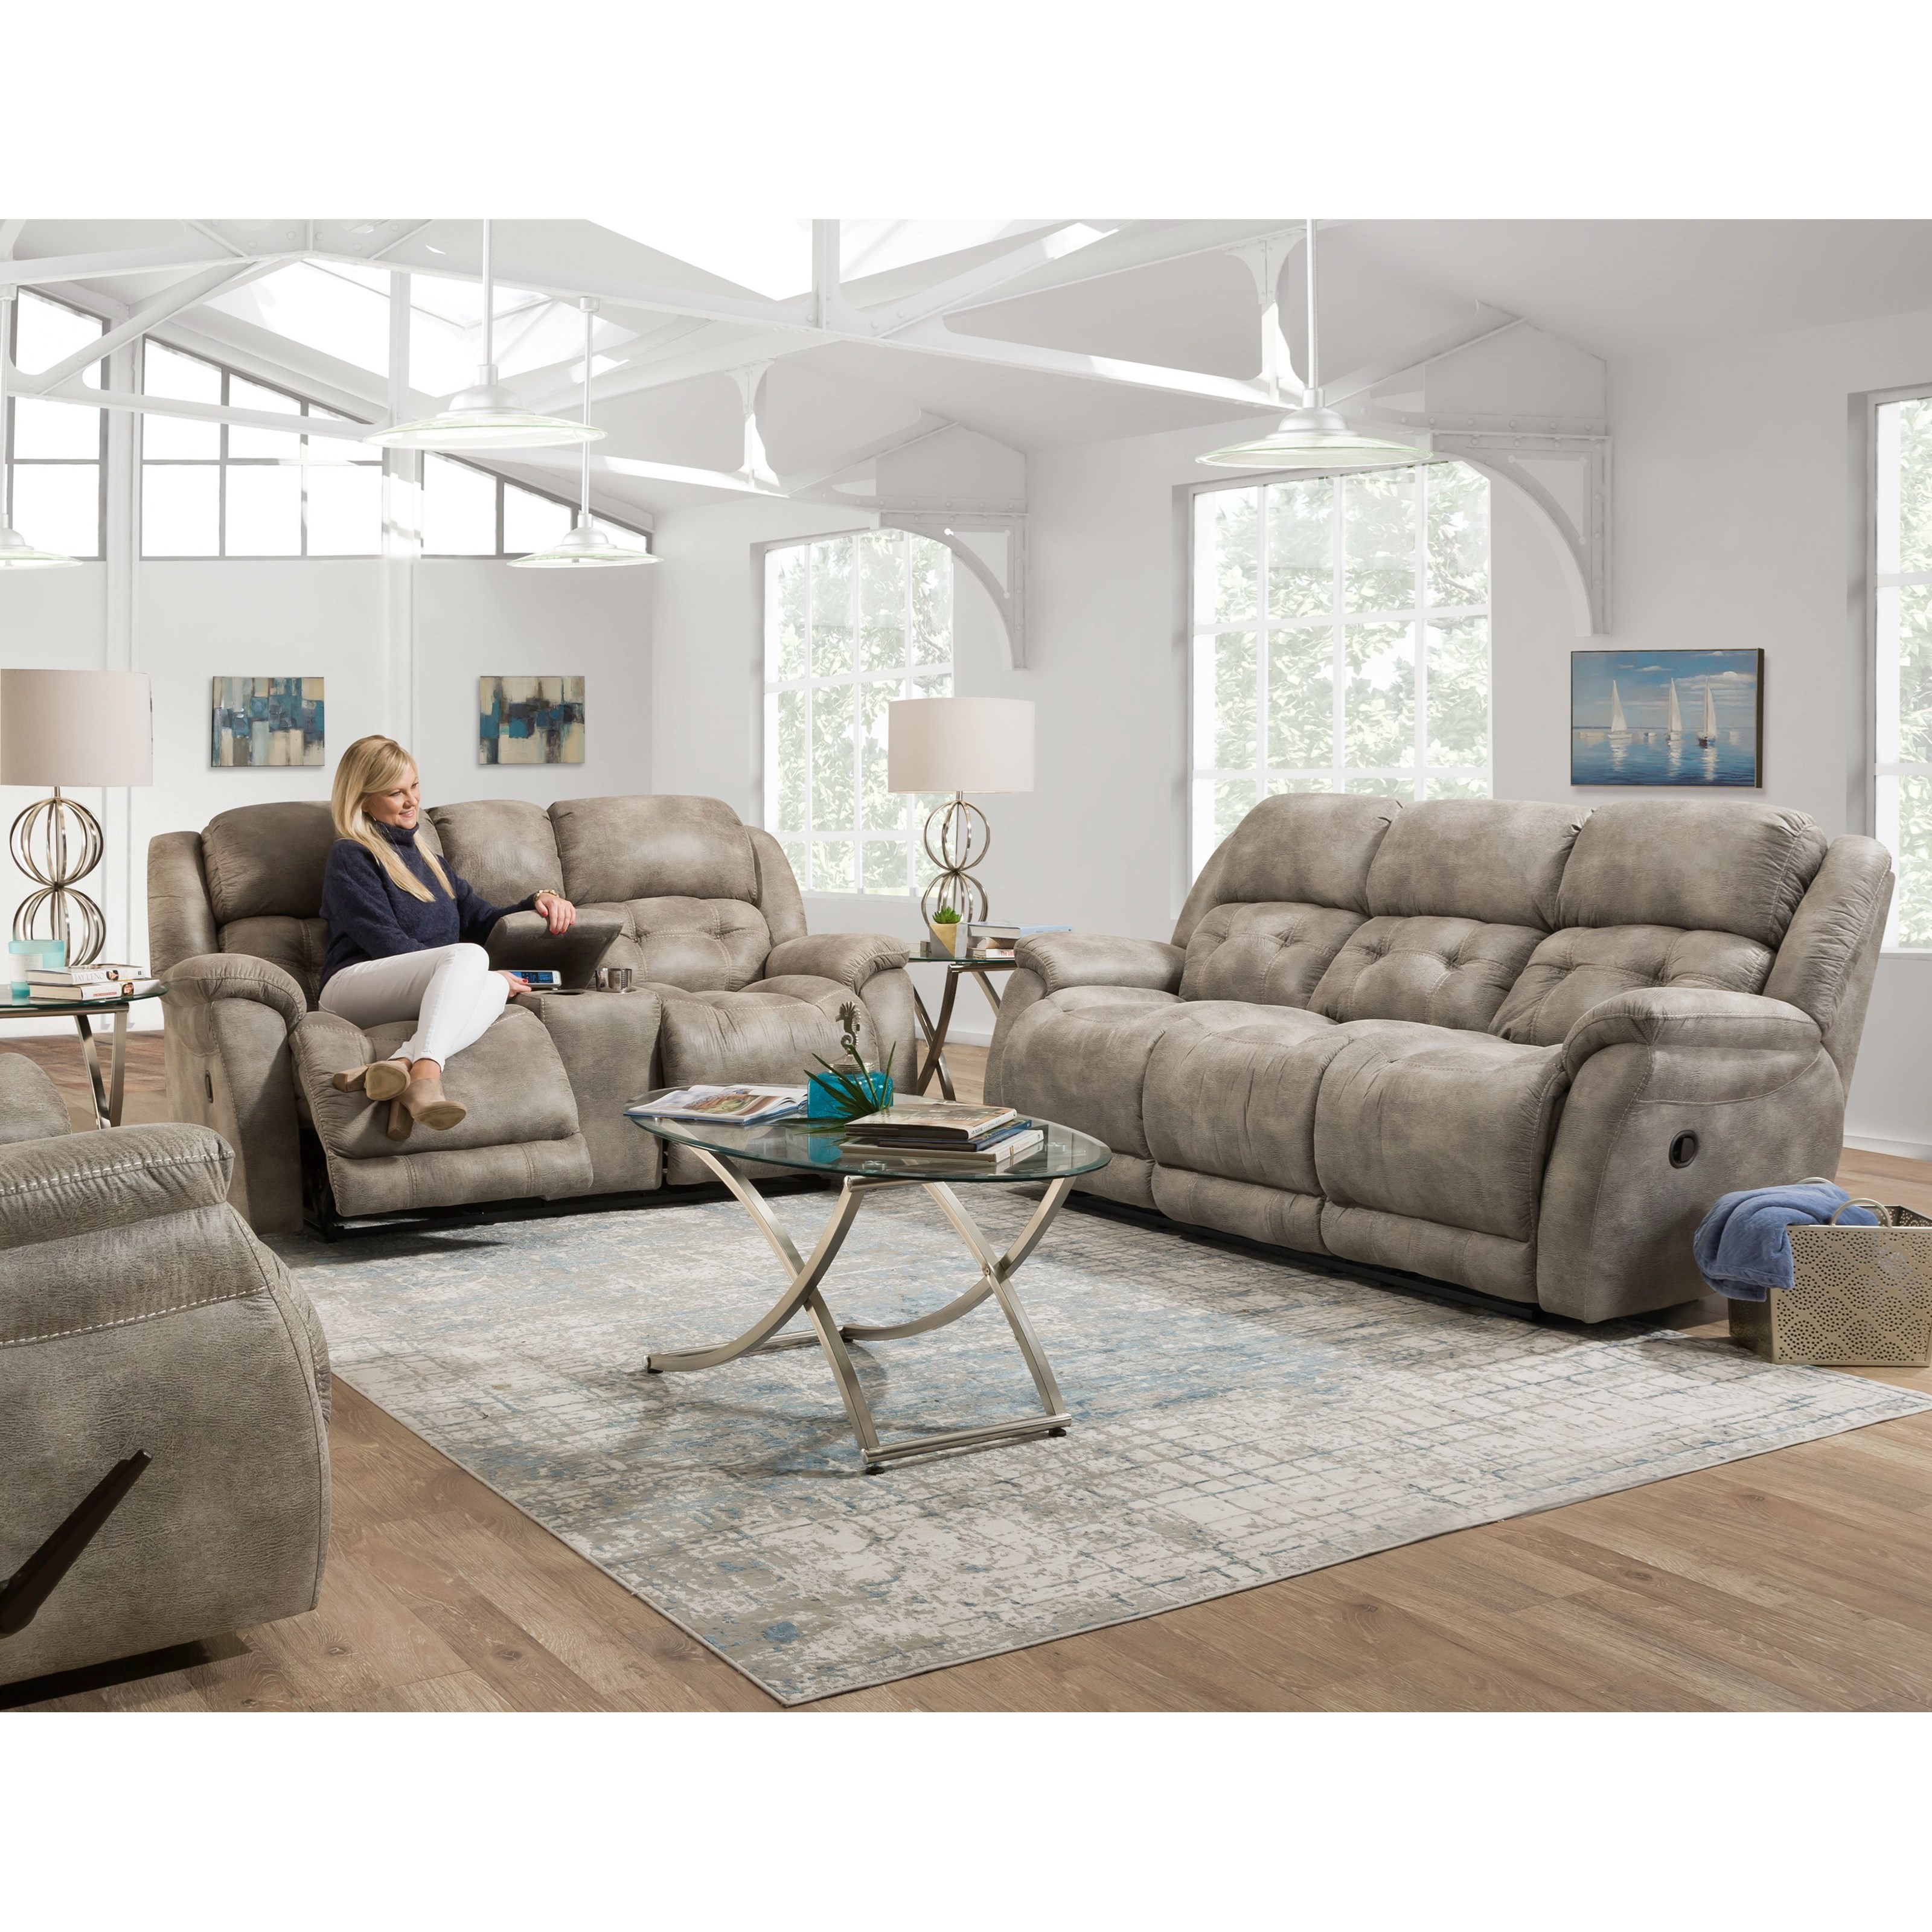 McLean Reclining Living Room Group by HomeStretch at Rife's Home Furniture